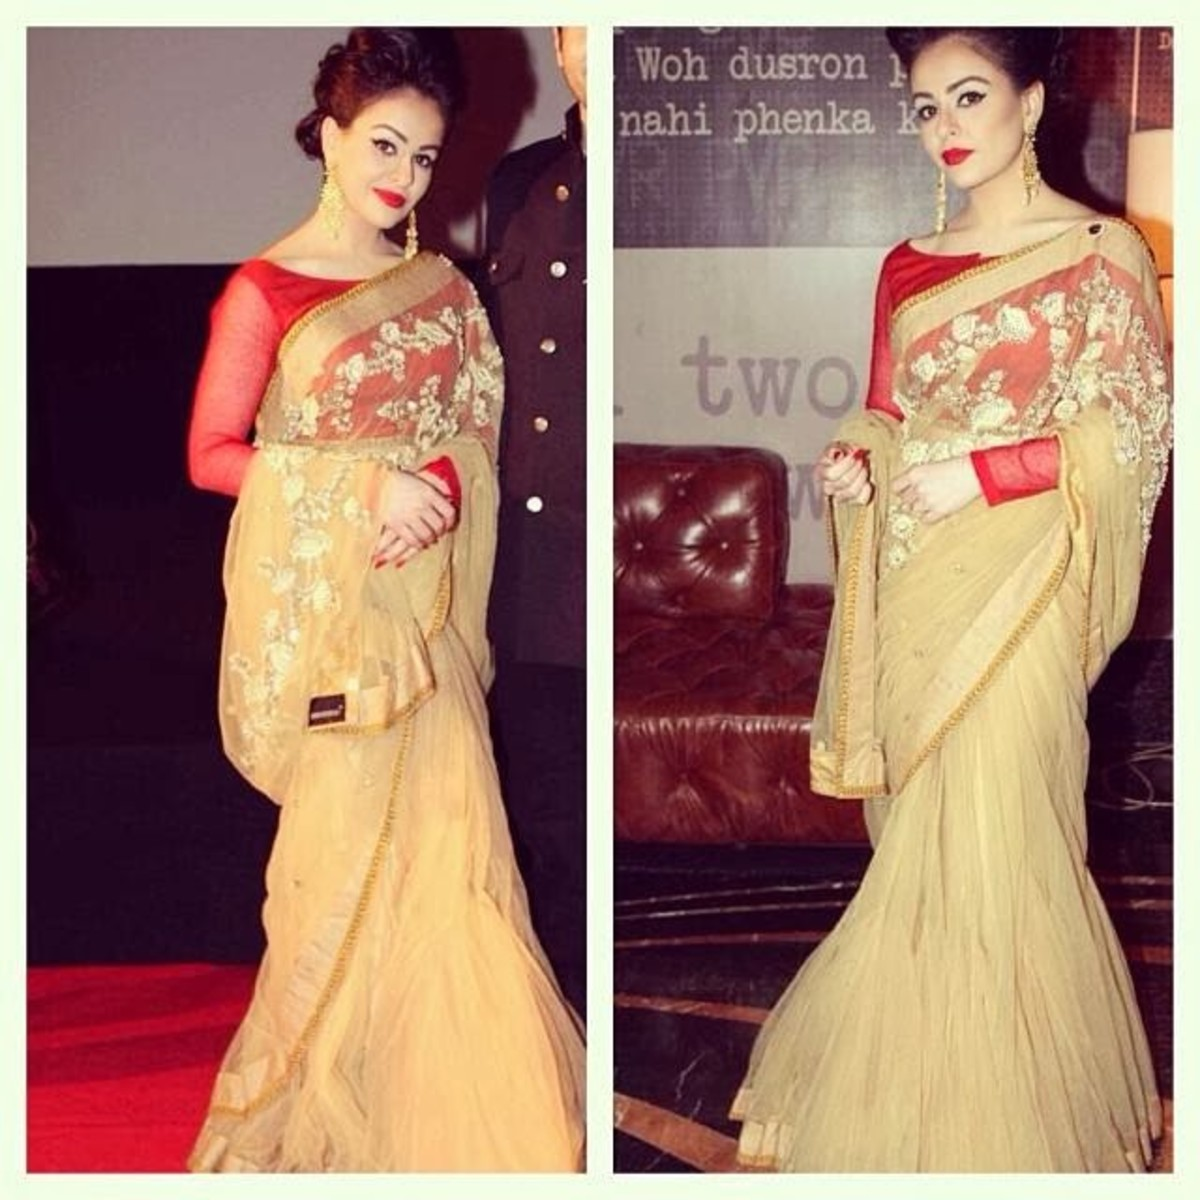 An absolutely gorgeously elegant saree look with red boat necked blouse.